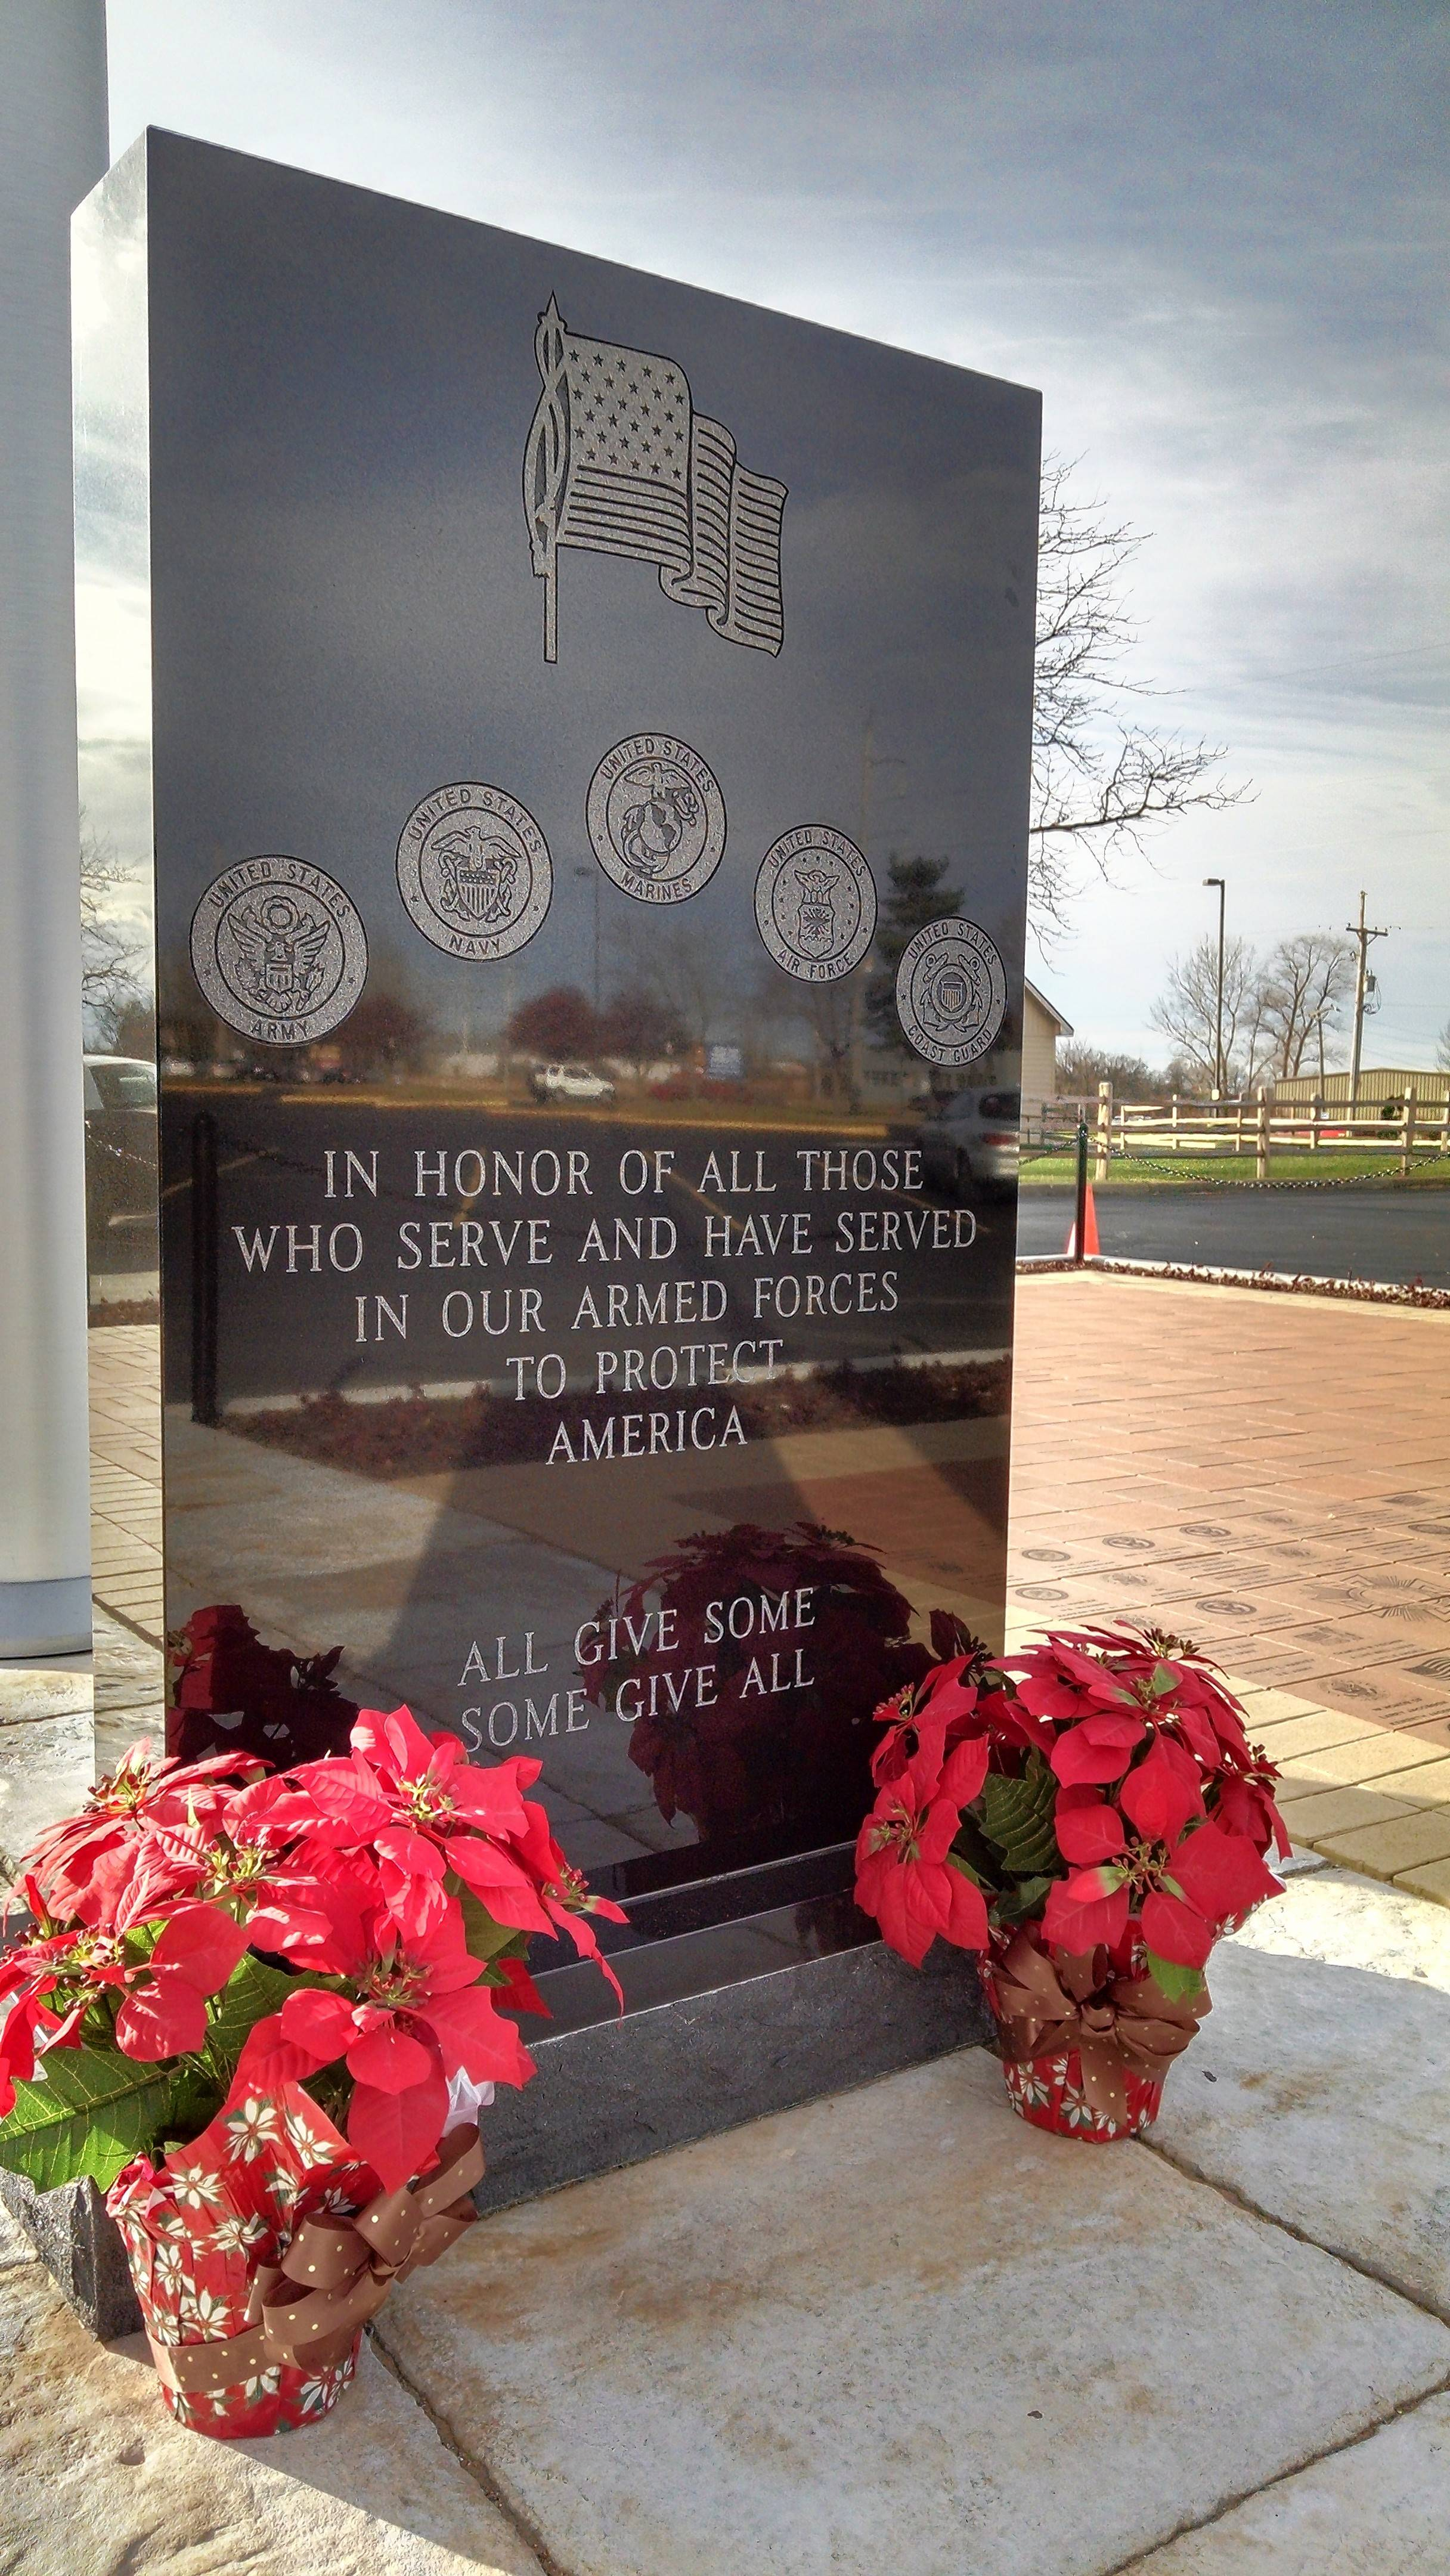 The Woodstock Harley-Davidson Veterans Memorial features a black granite engraved monument as the base of its 80-foot flagpole with a giant American flag. For Veterans Day Nov. 11, the dealership will host a Veterans Fair and ceremony.